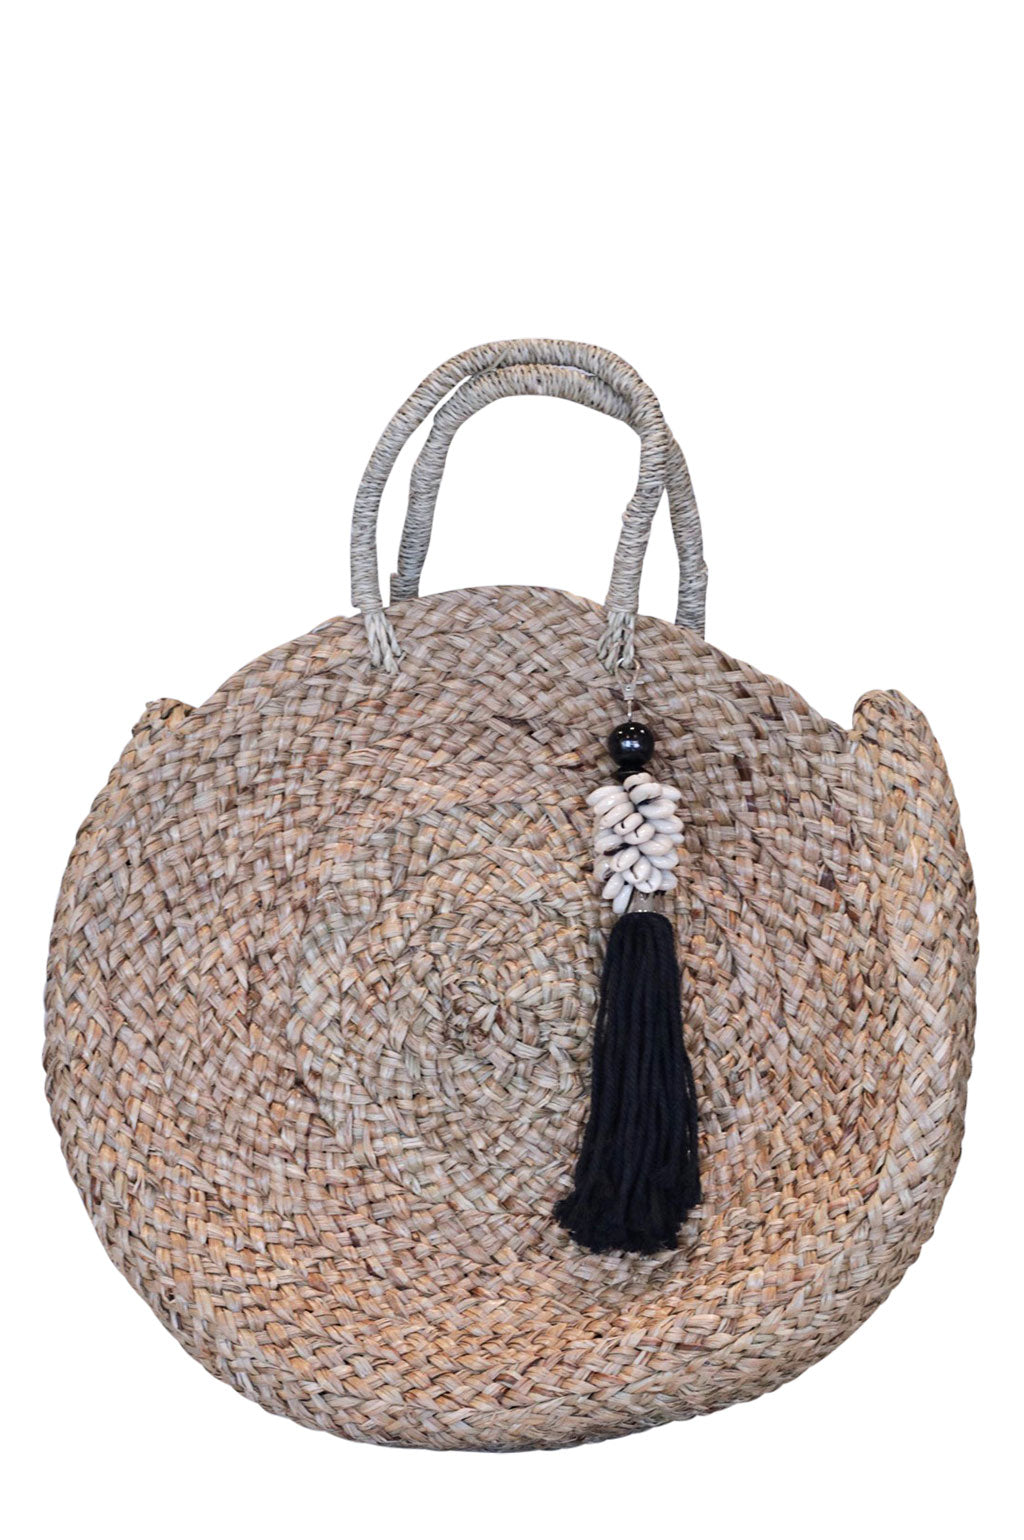 Sandy Bag Black Shell Tassel